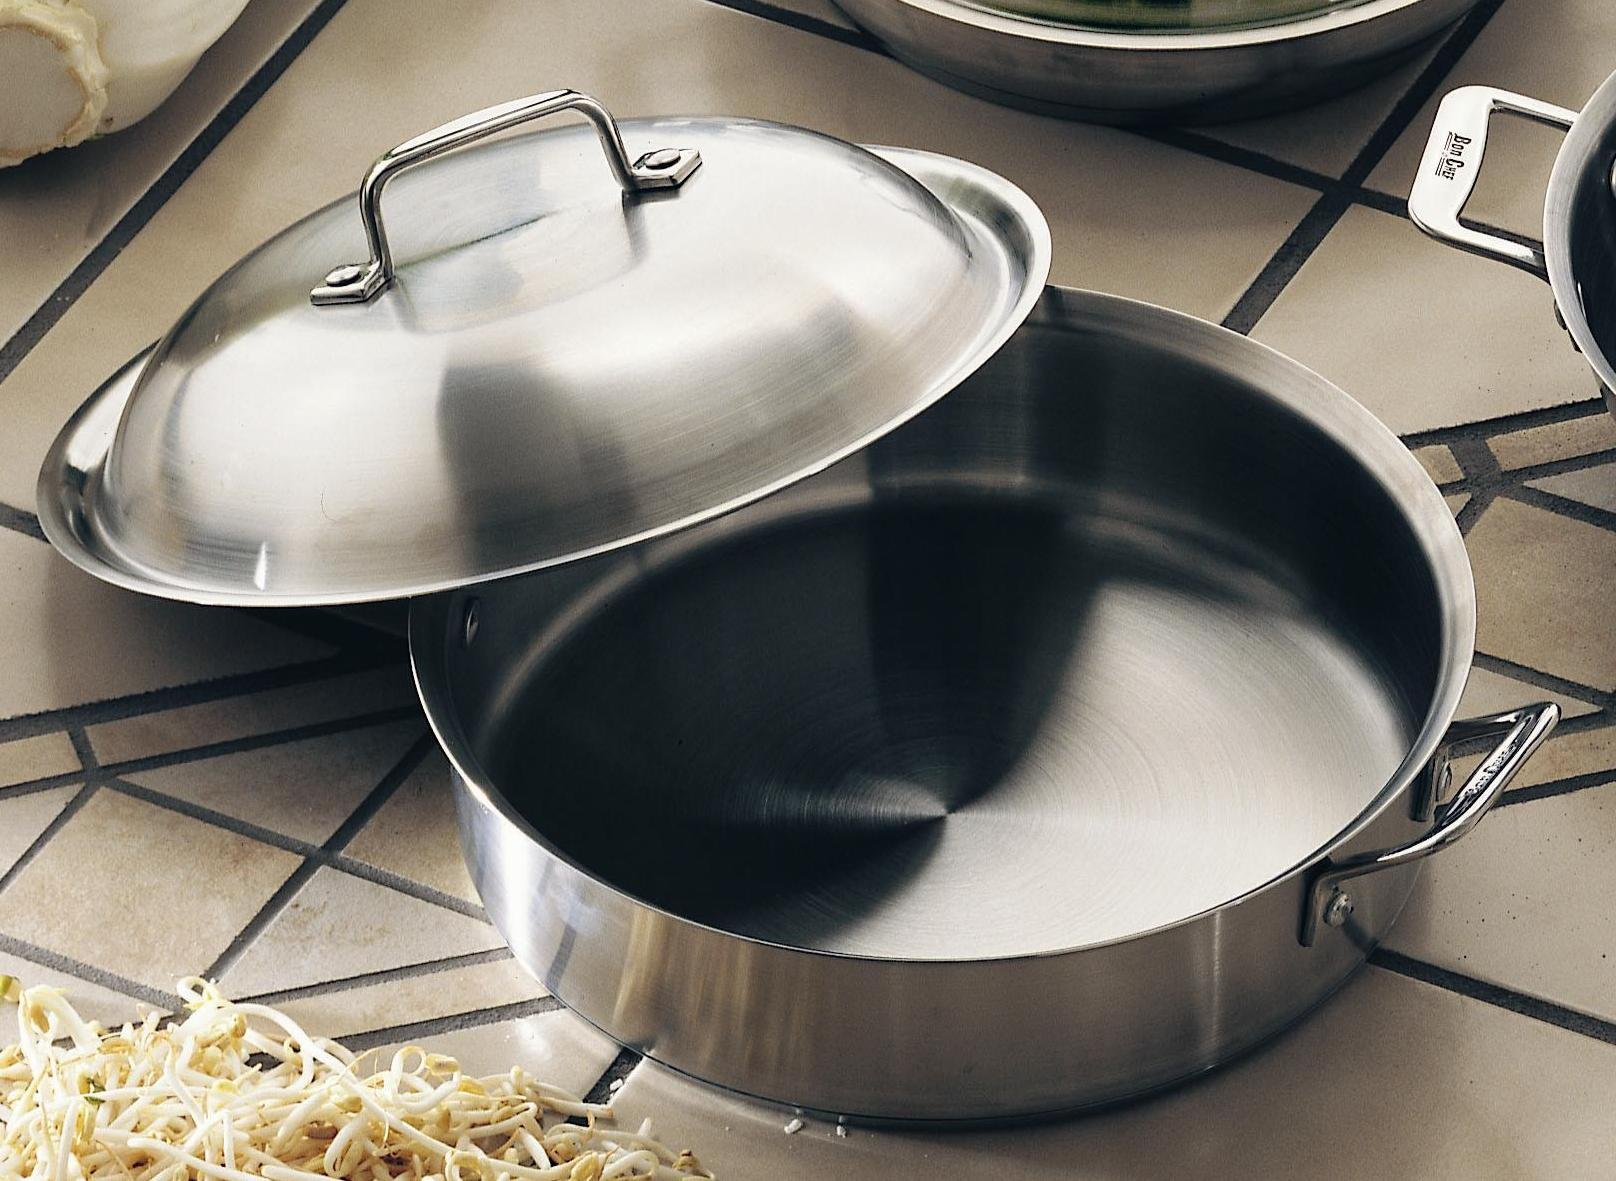 Bon Chef 60001 Stainless Steel Induction Bottom Cucina Saute Pan, 4 quart Capacity, 13-29/32'' Length x 11-19/64'' Width x 3'' Height by Bon Chef (Image #2)